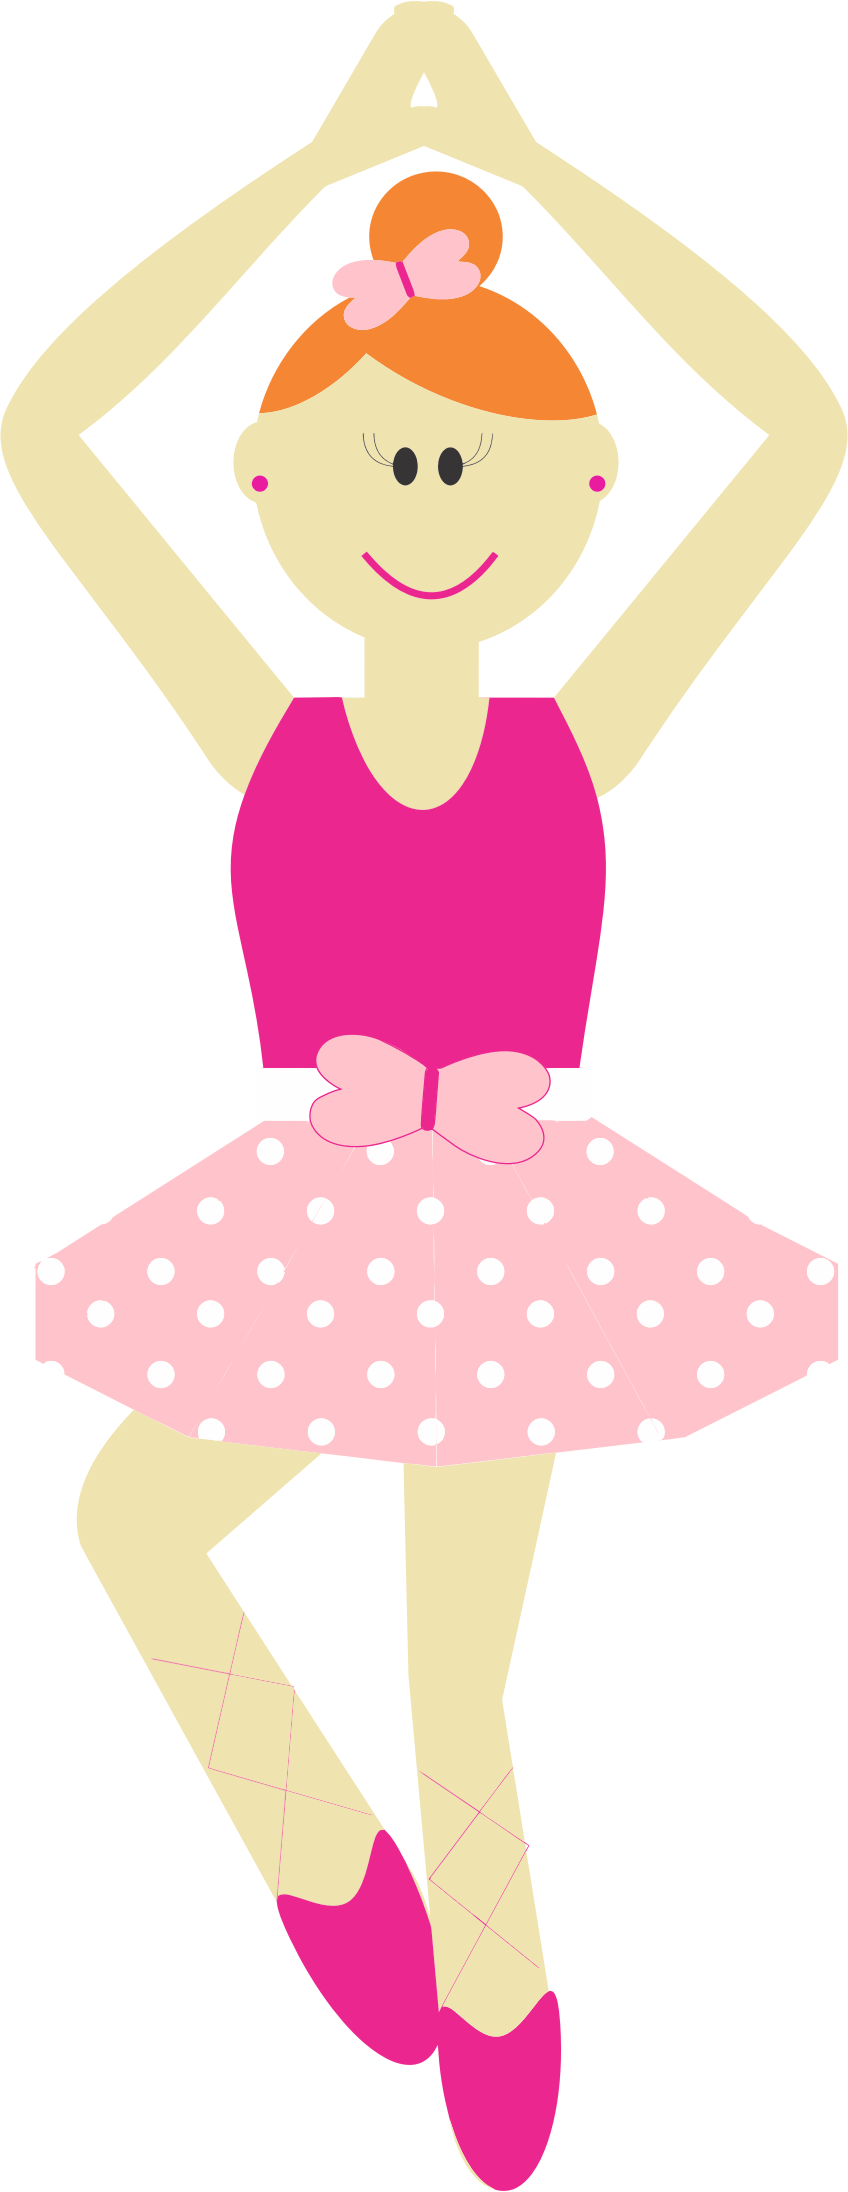 Ballet clipart cartoon Ballerina Ballerina Cartoon Clipart Cartoon